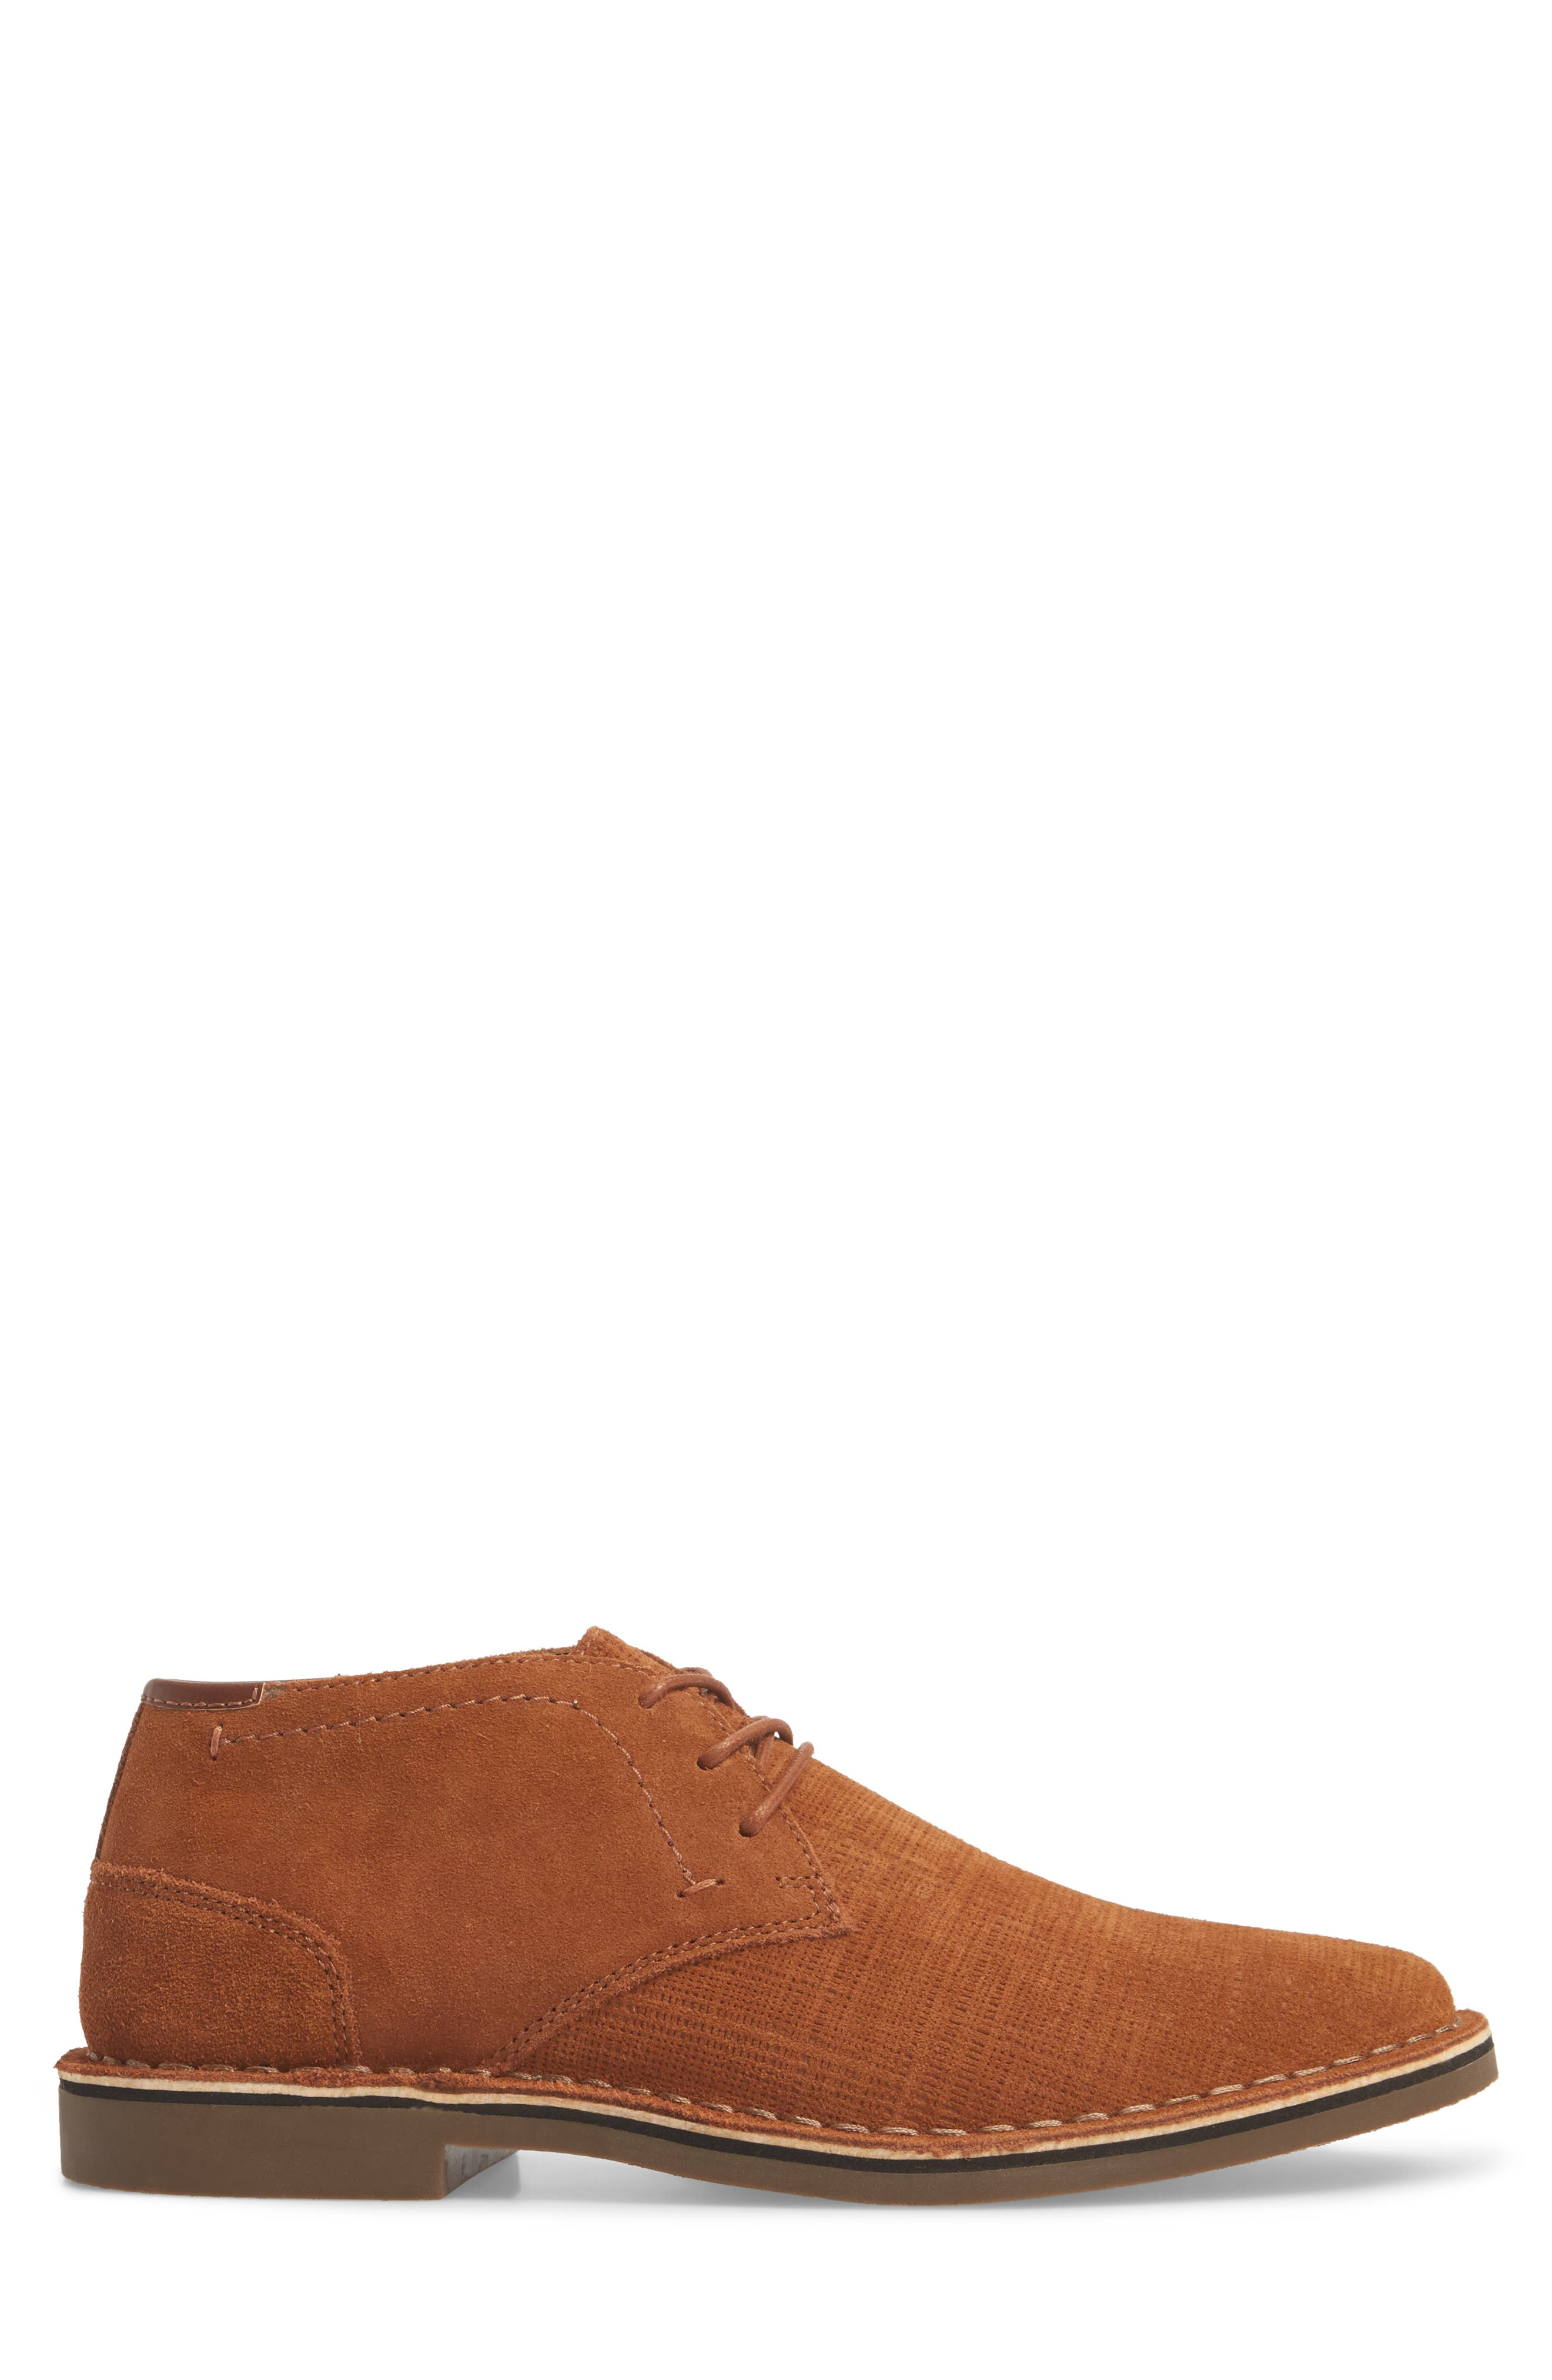 Desert Sun Textured Chukka Boot,                             Alternate thumbnail 5, color,